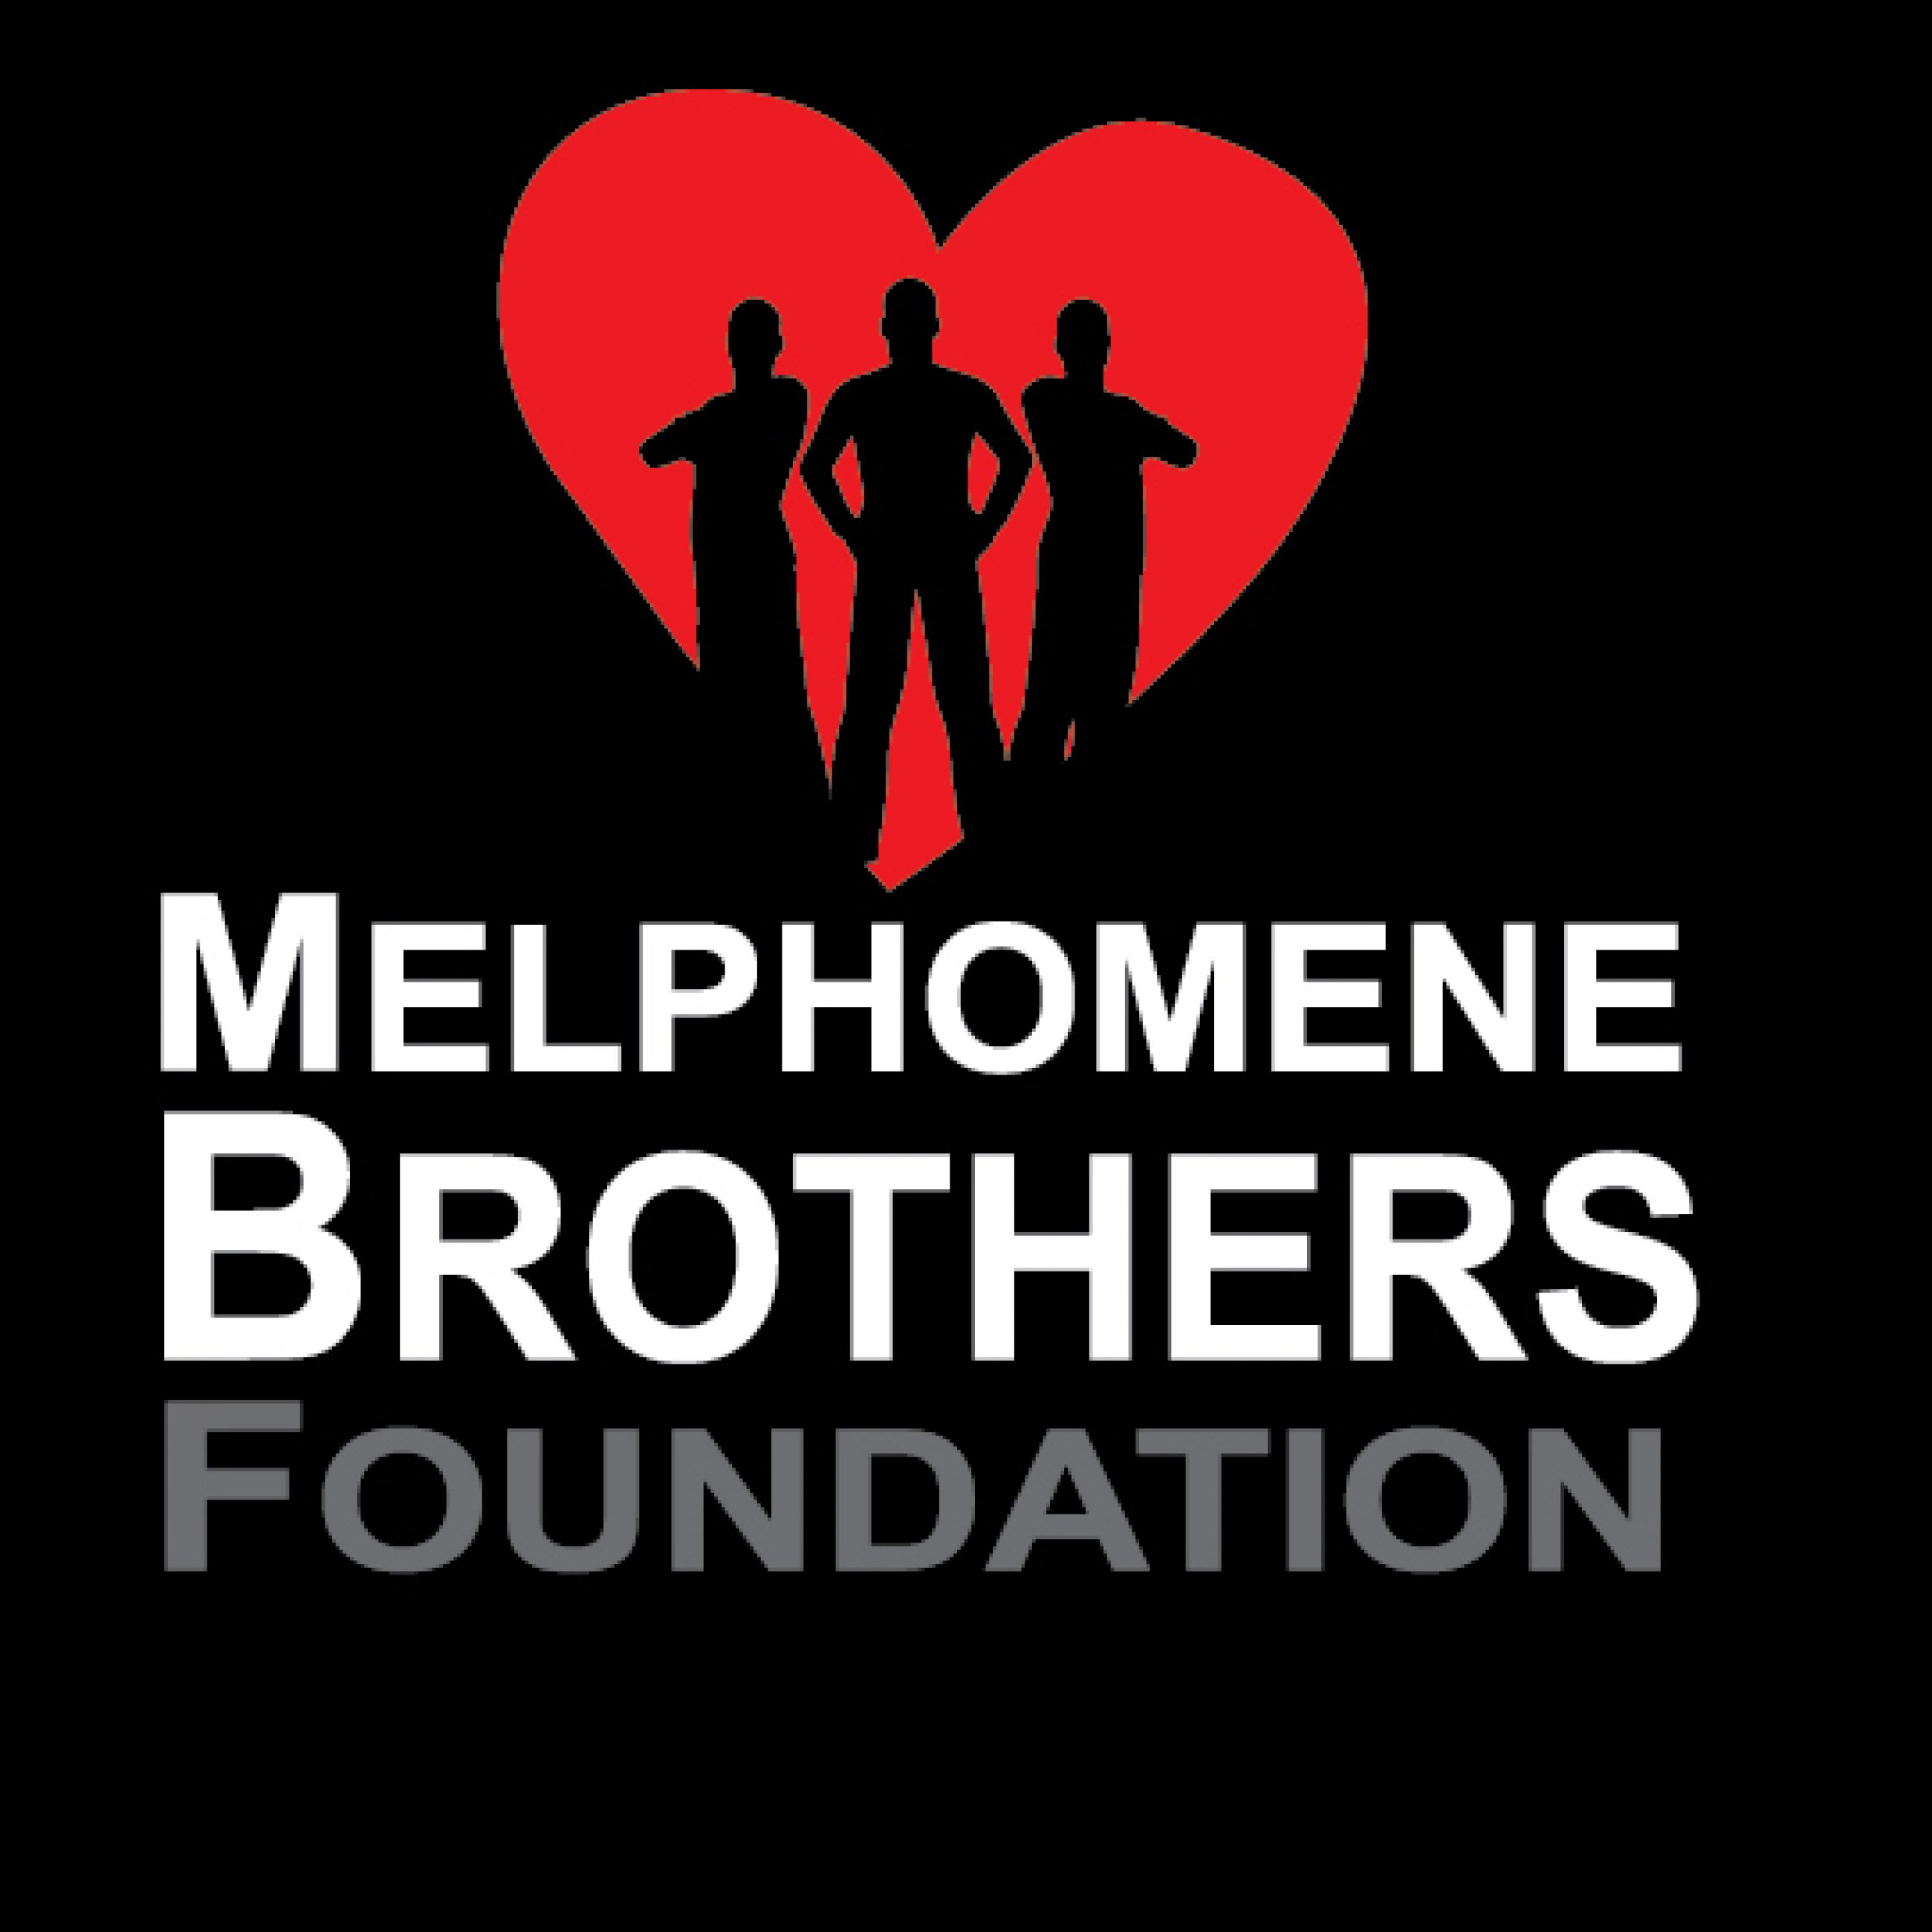 Melphomene Brothers Foundation